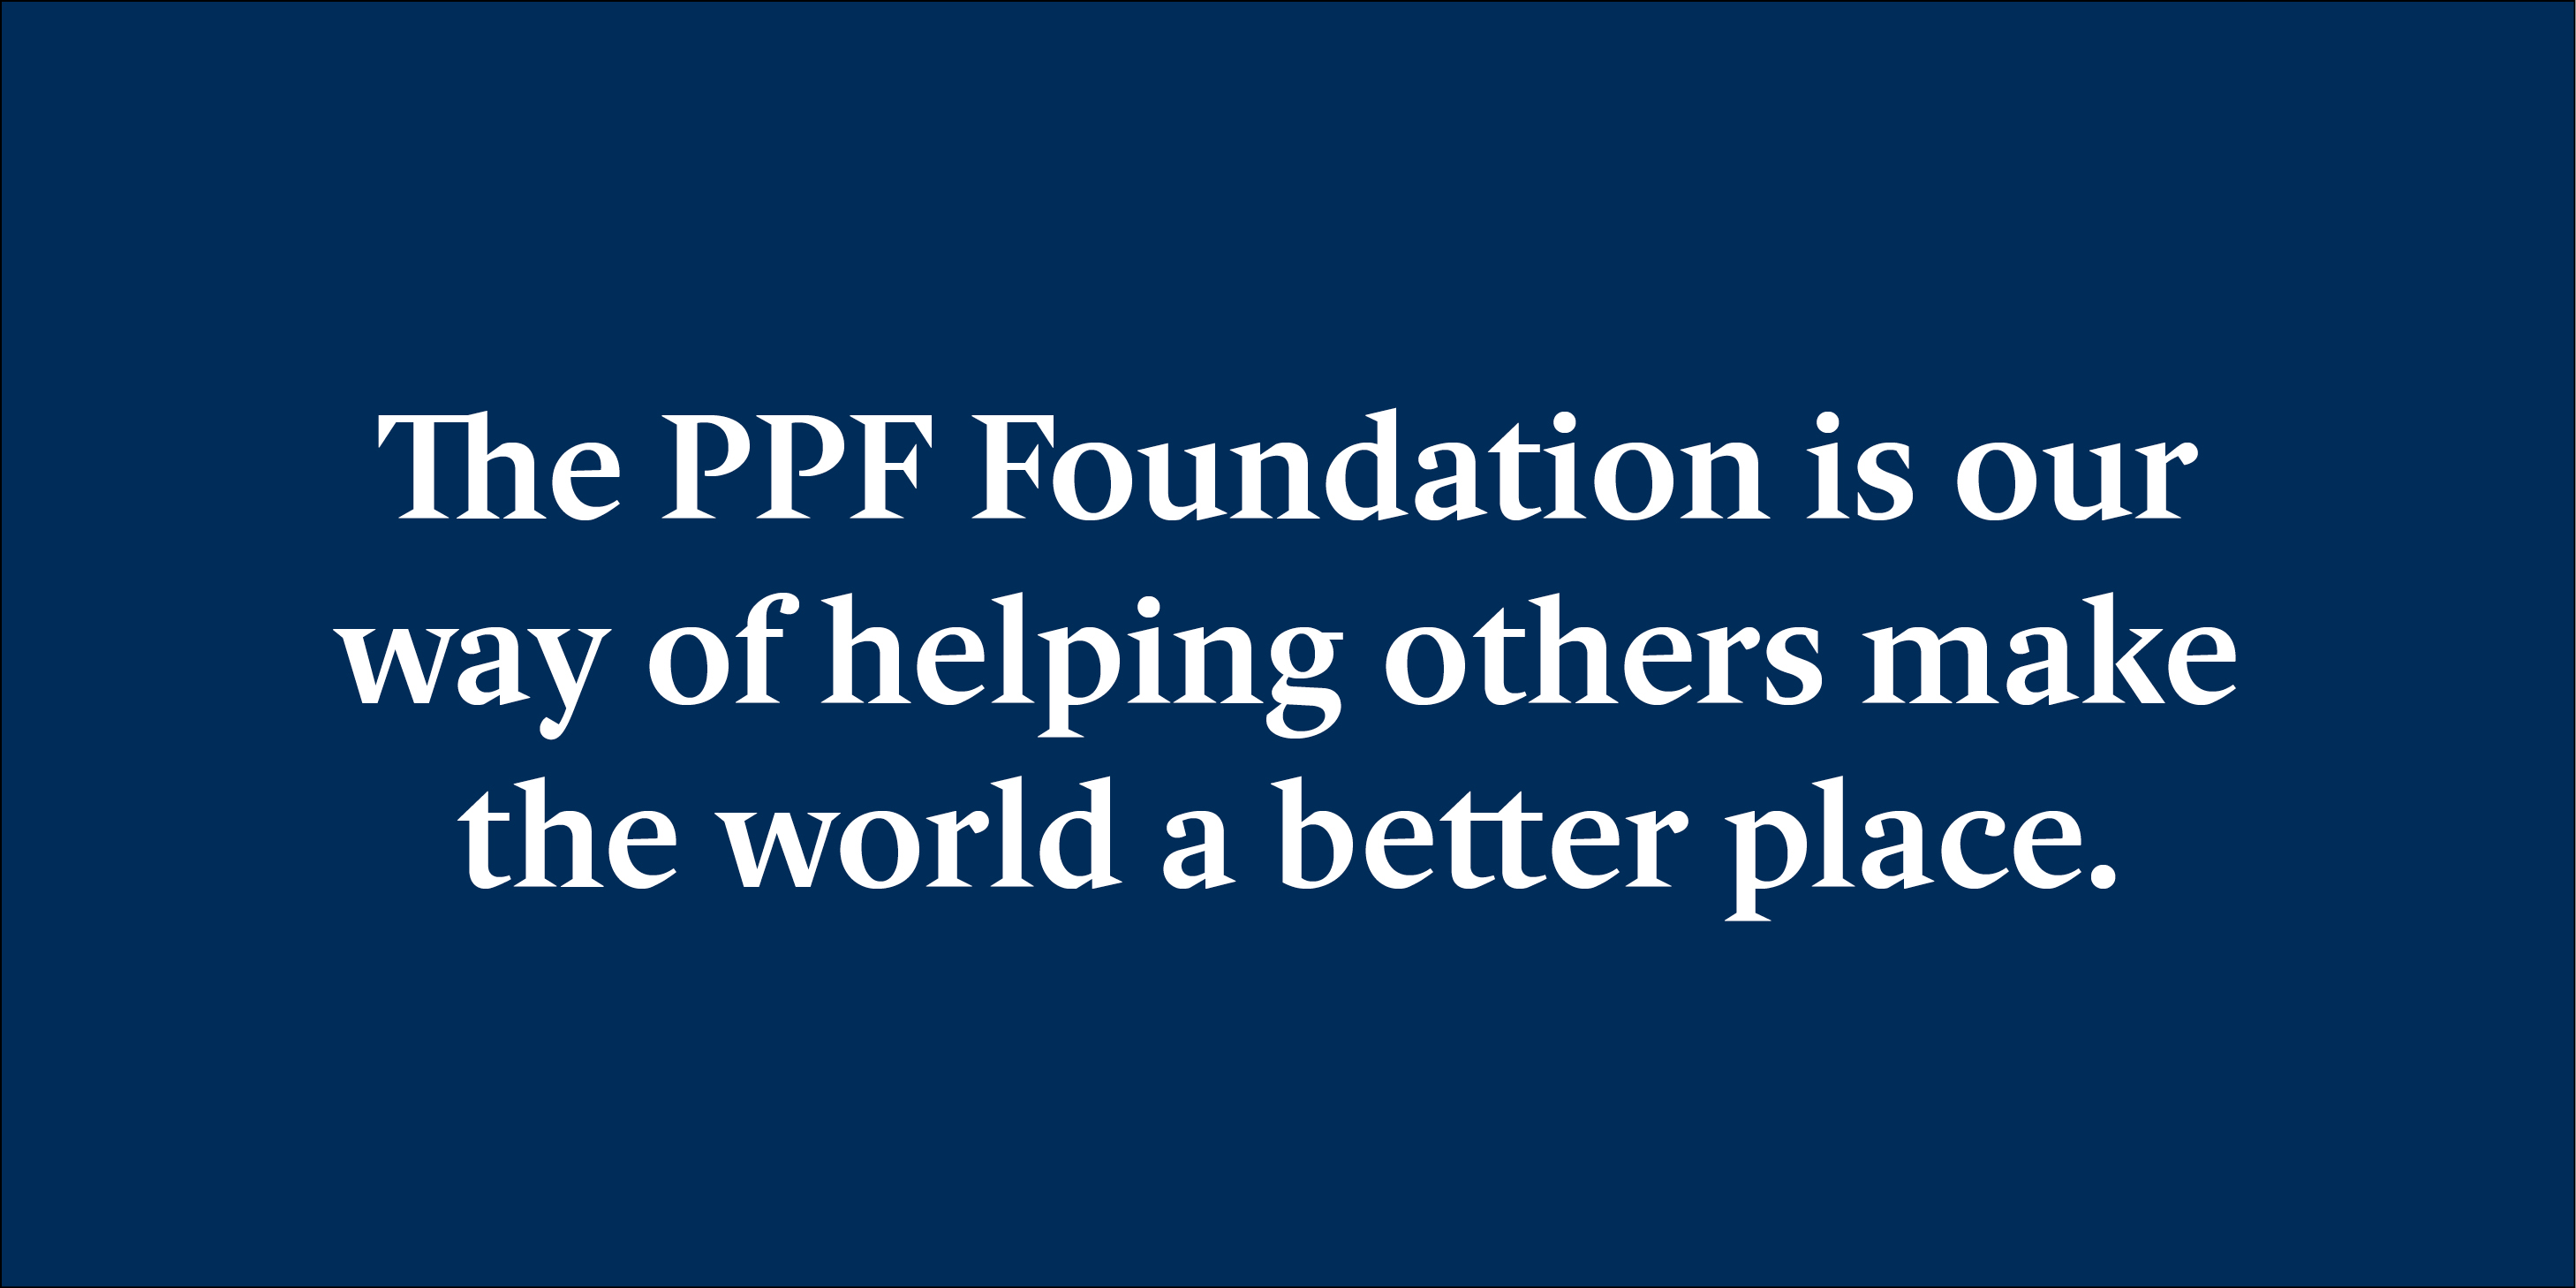 The PPF Foundation is our way of helping others make the world abetter place.